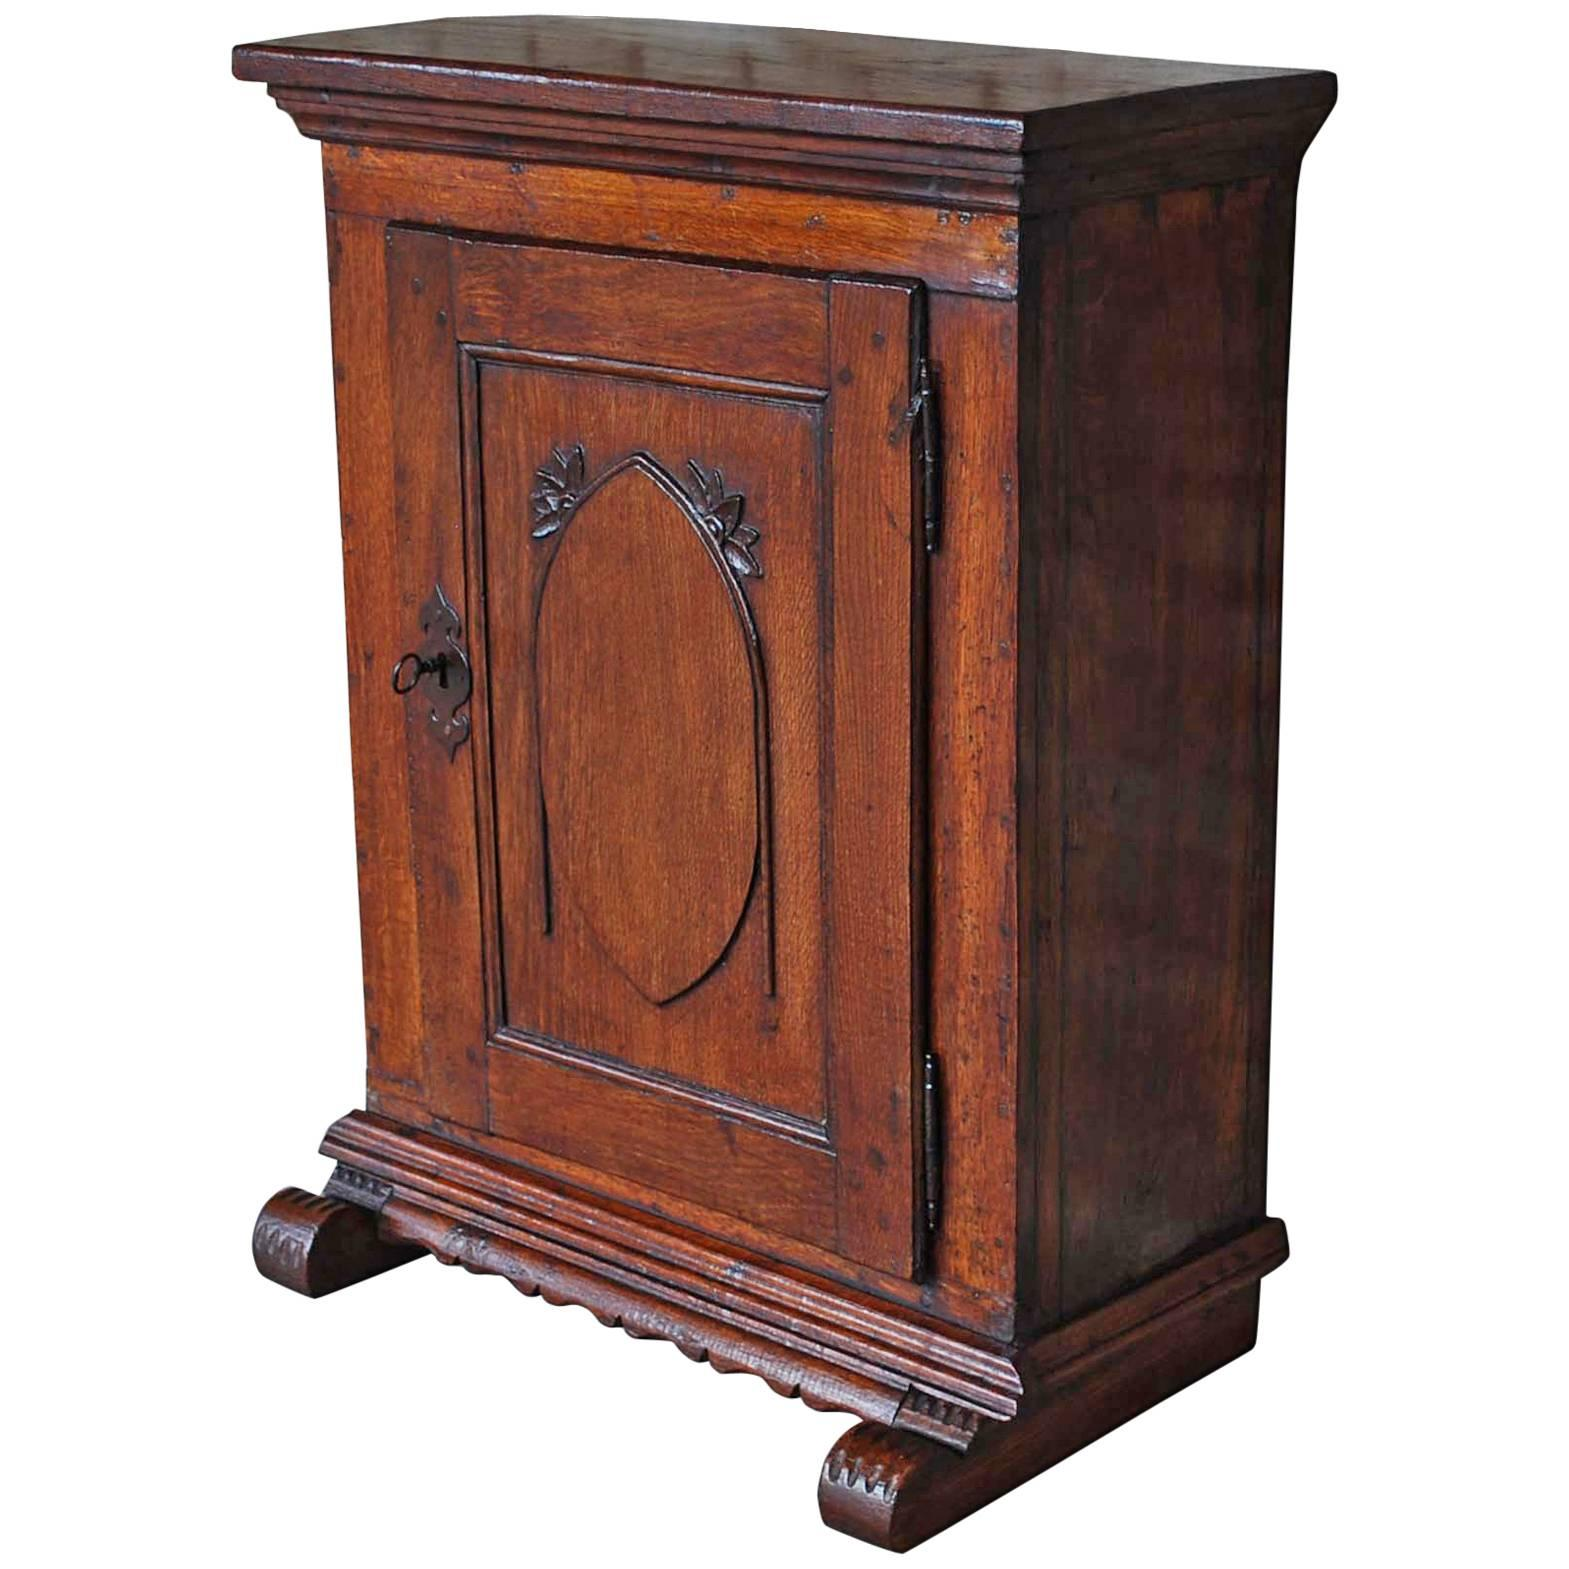 Superb 19th Century Small Antique German Oak Cabinet For Sale